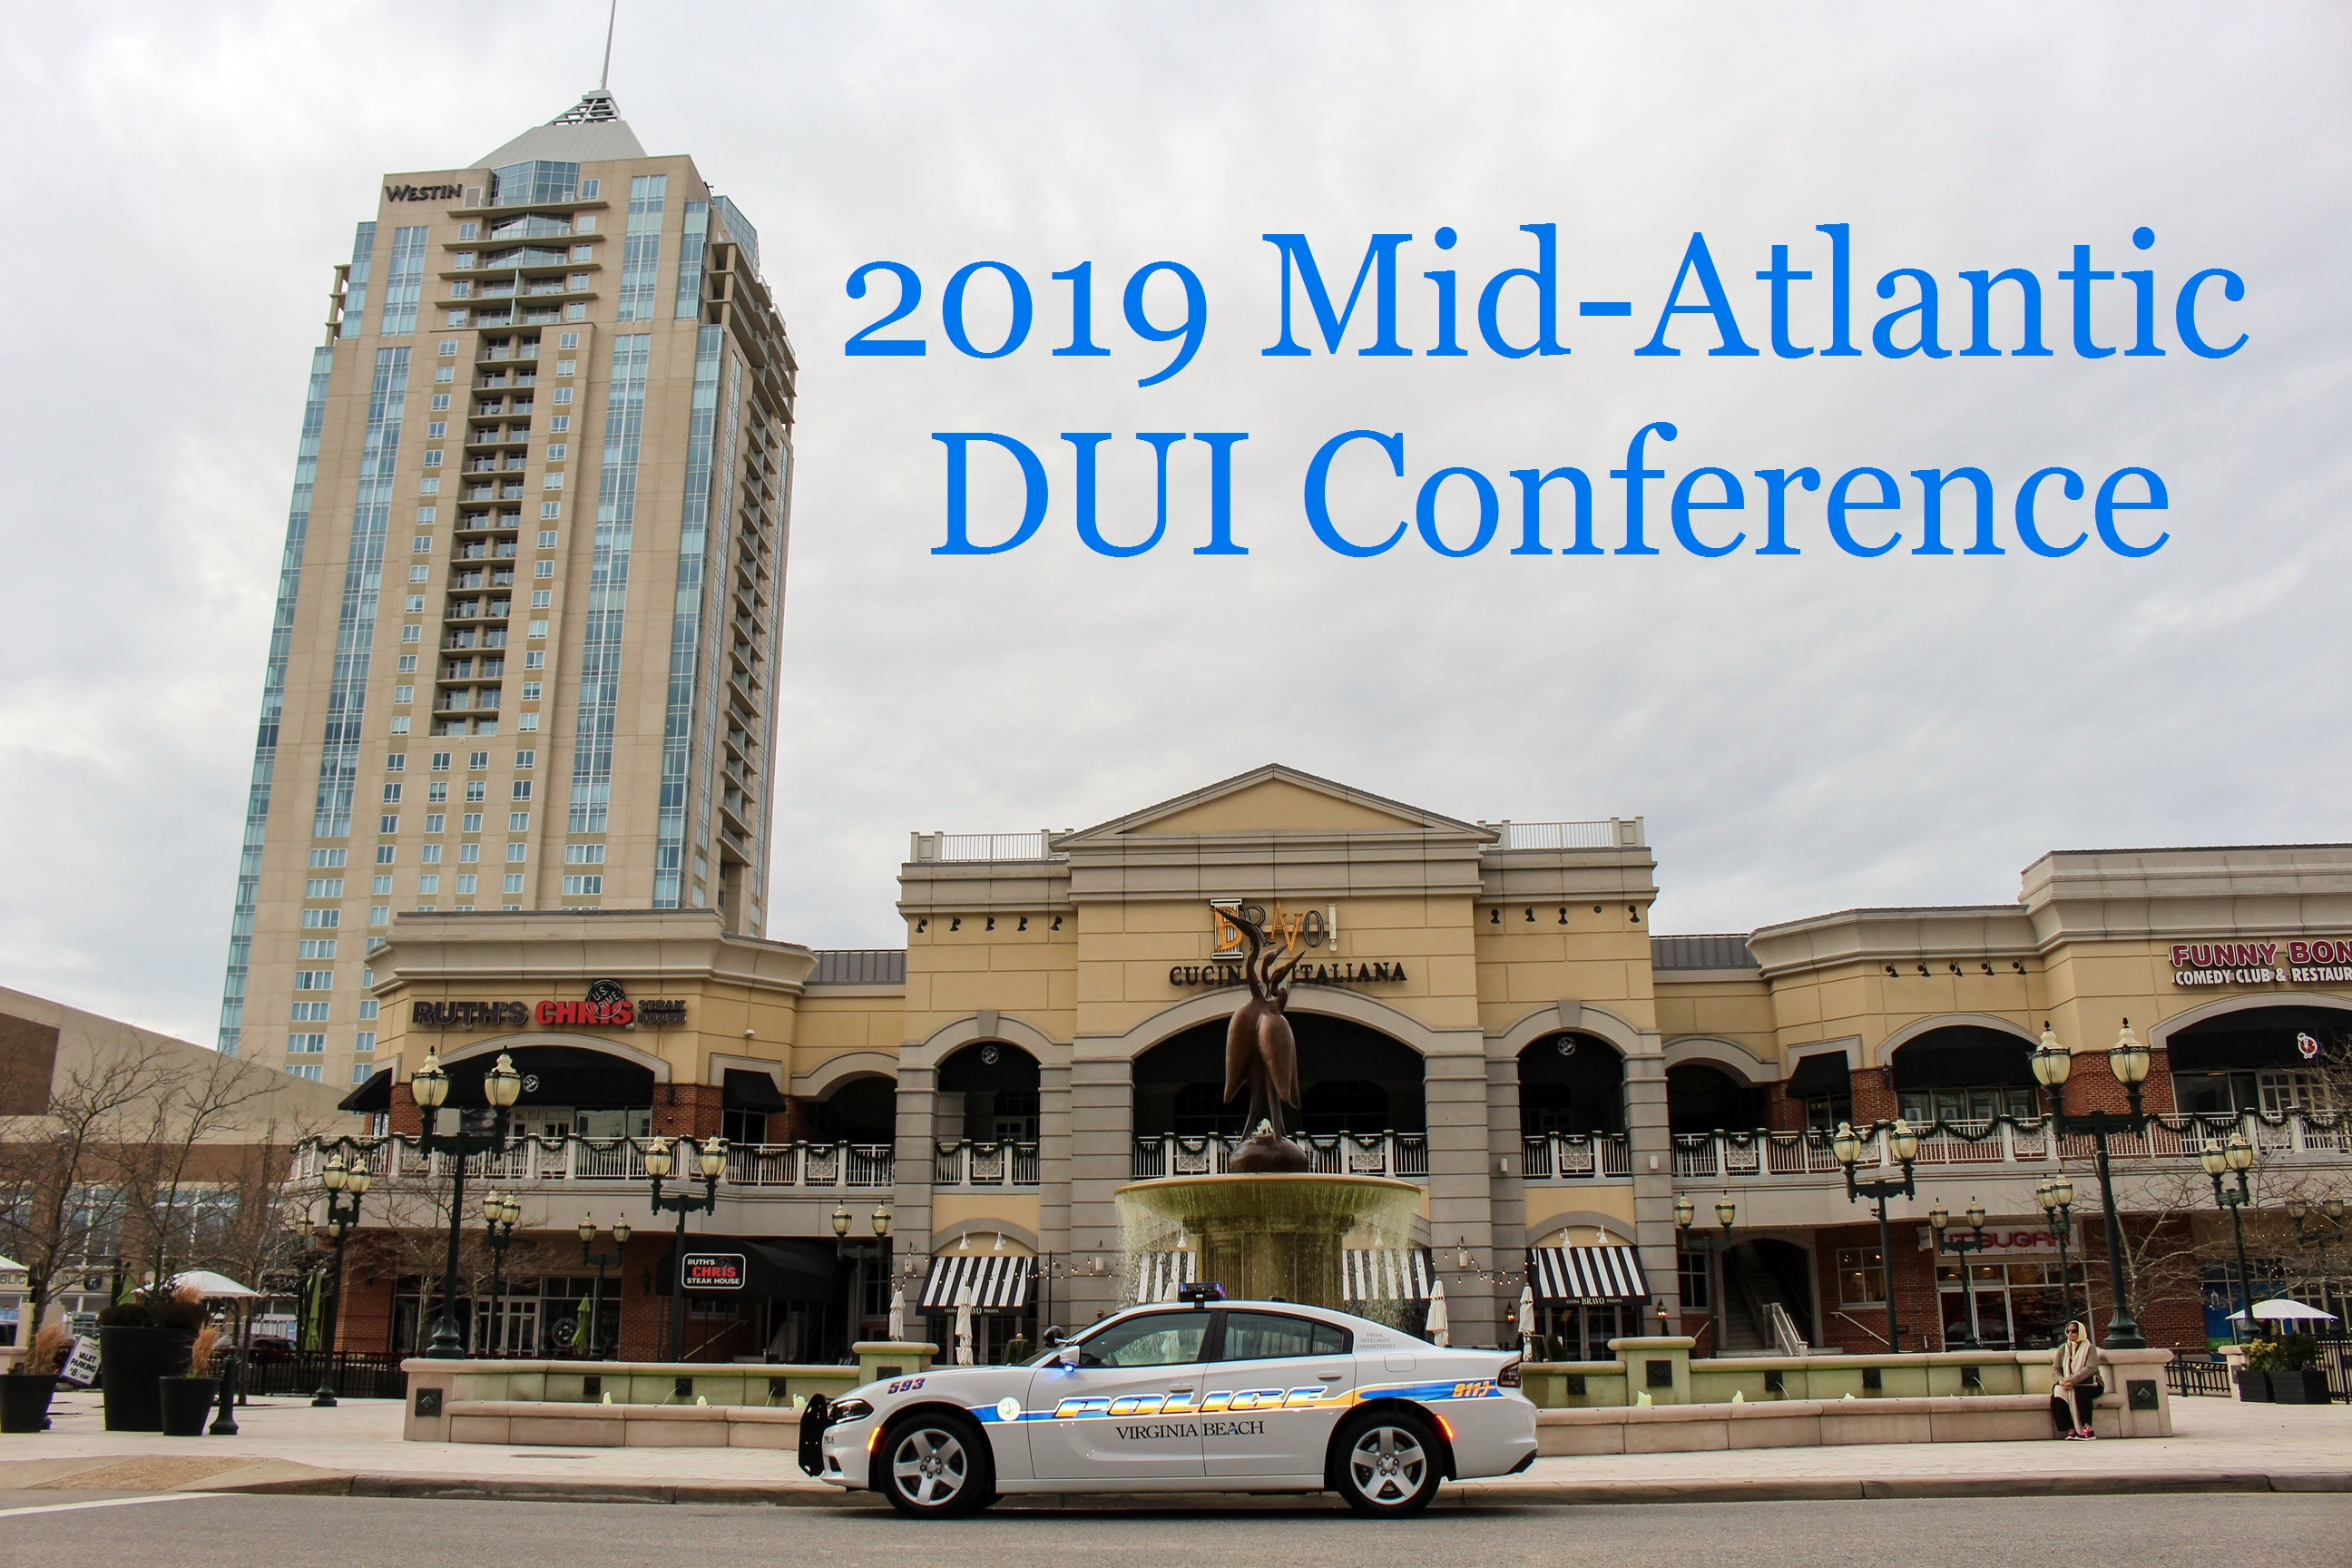 2019 Mid-Atlantic DUI Conference